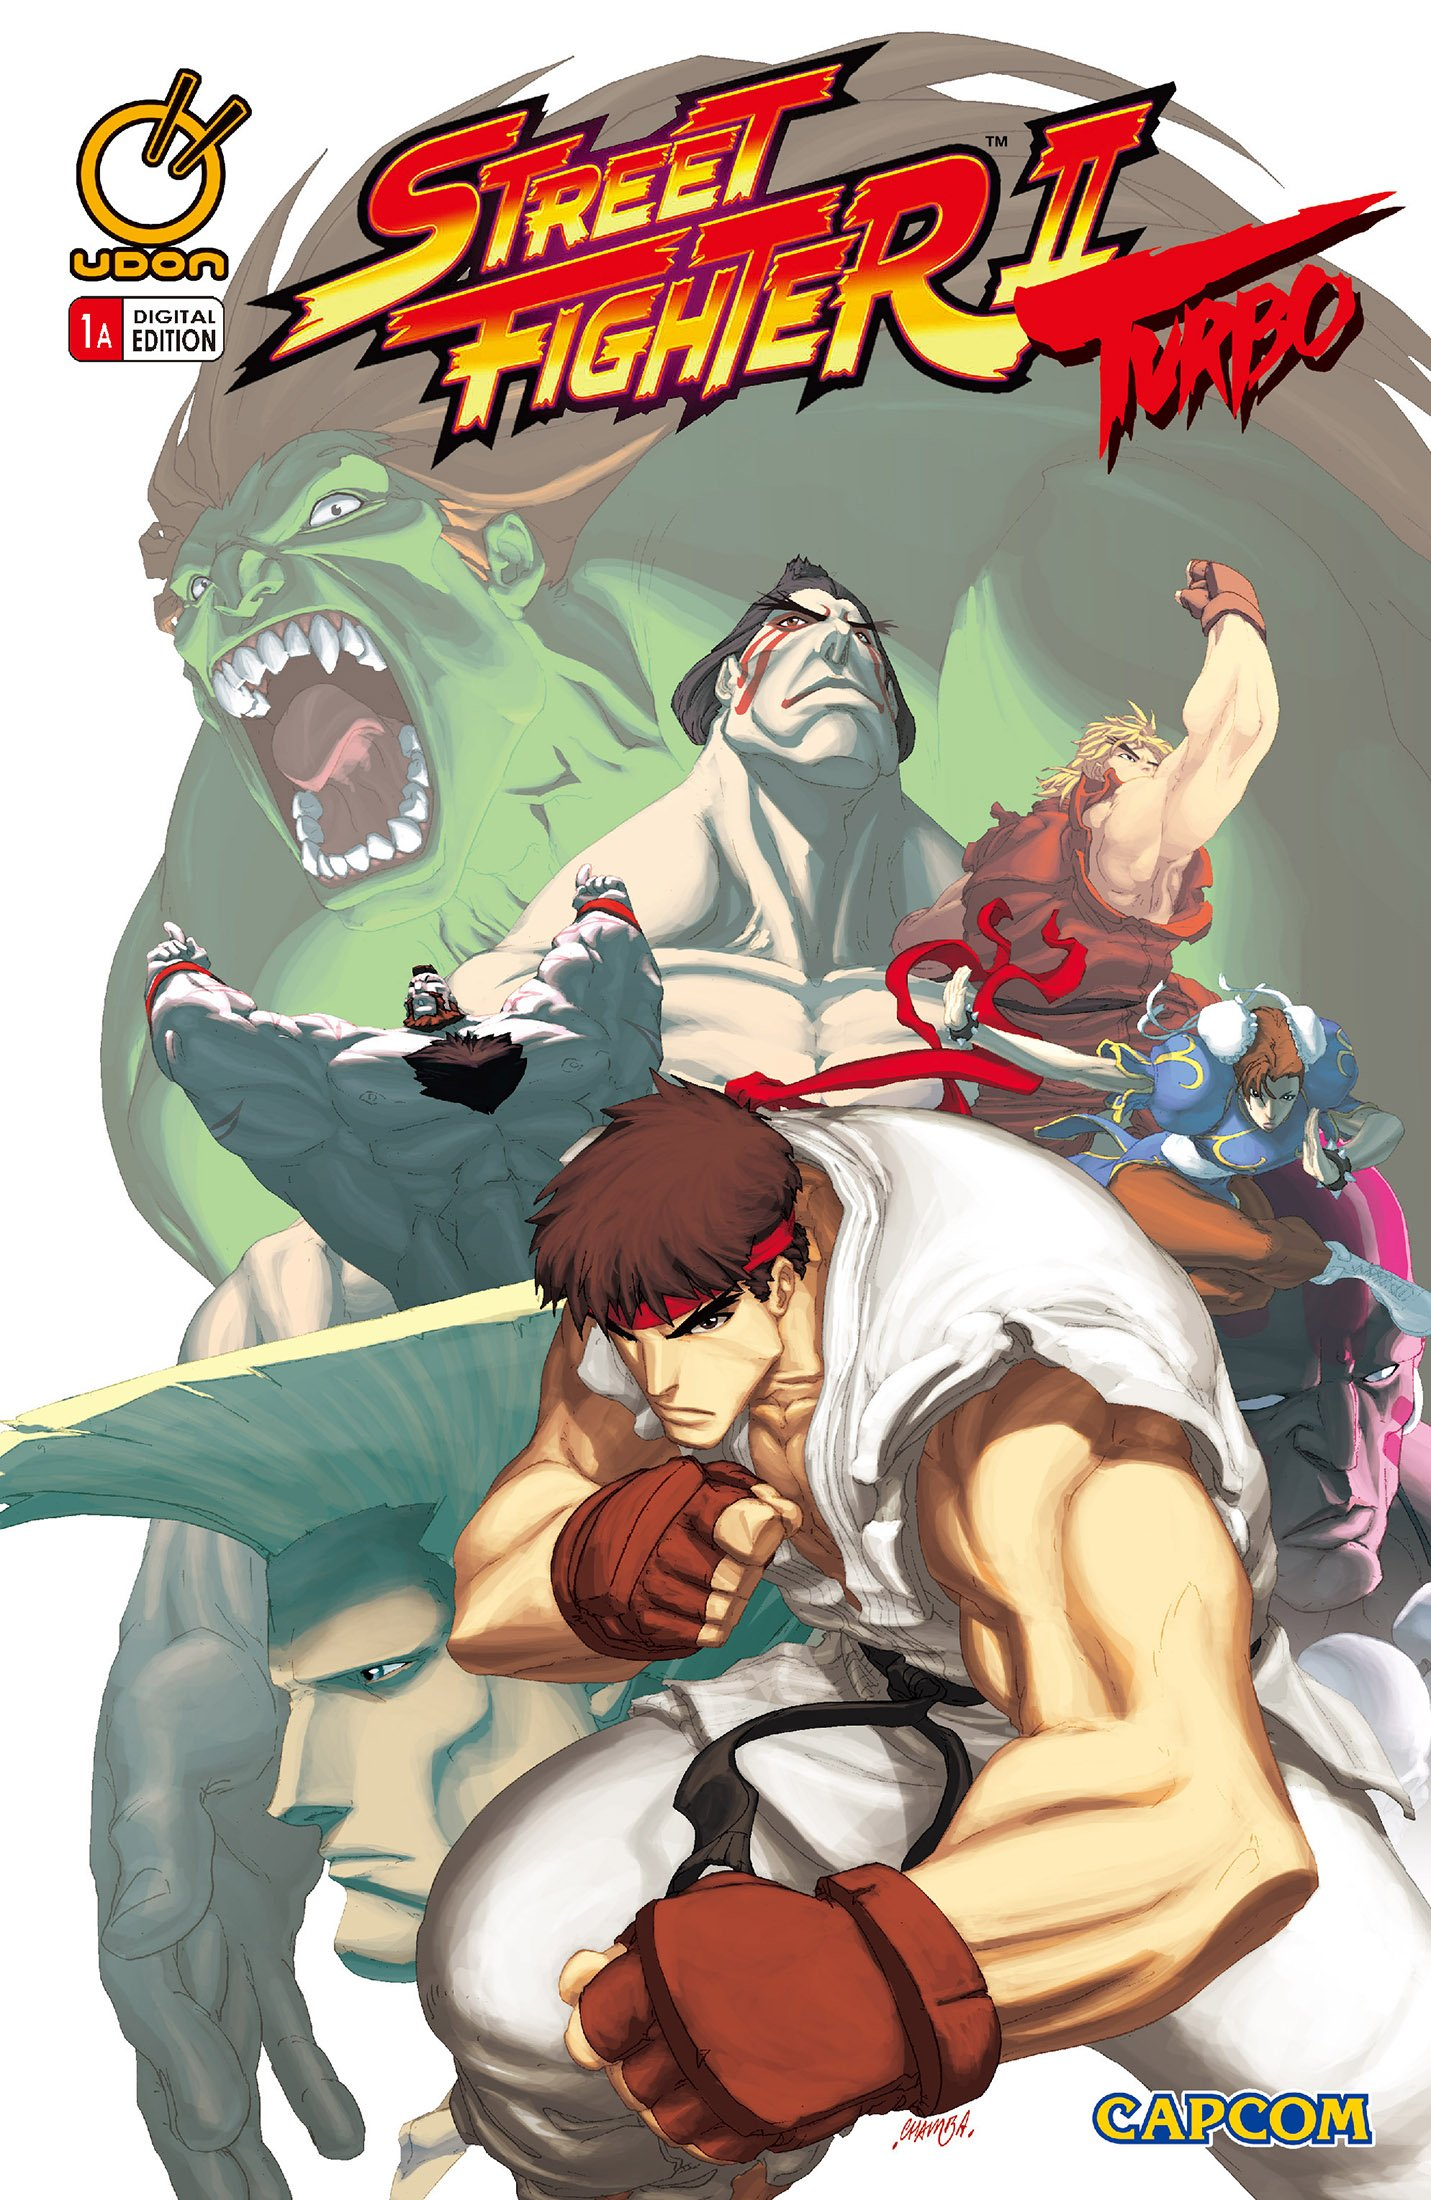 Street Fighter II Turbo 001 (October 2008) (cover a)